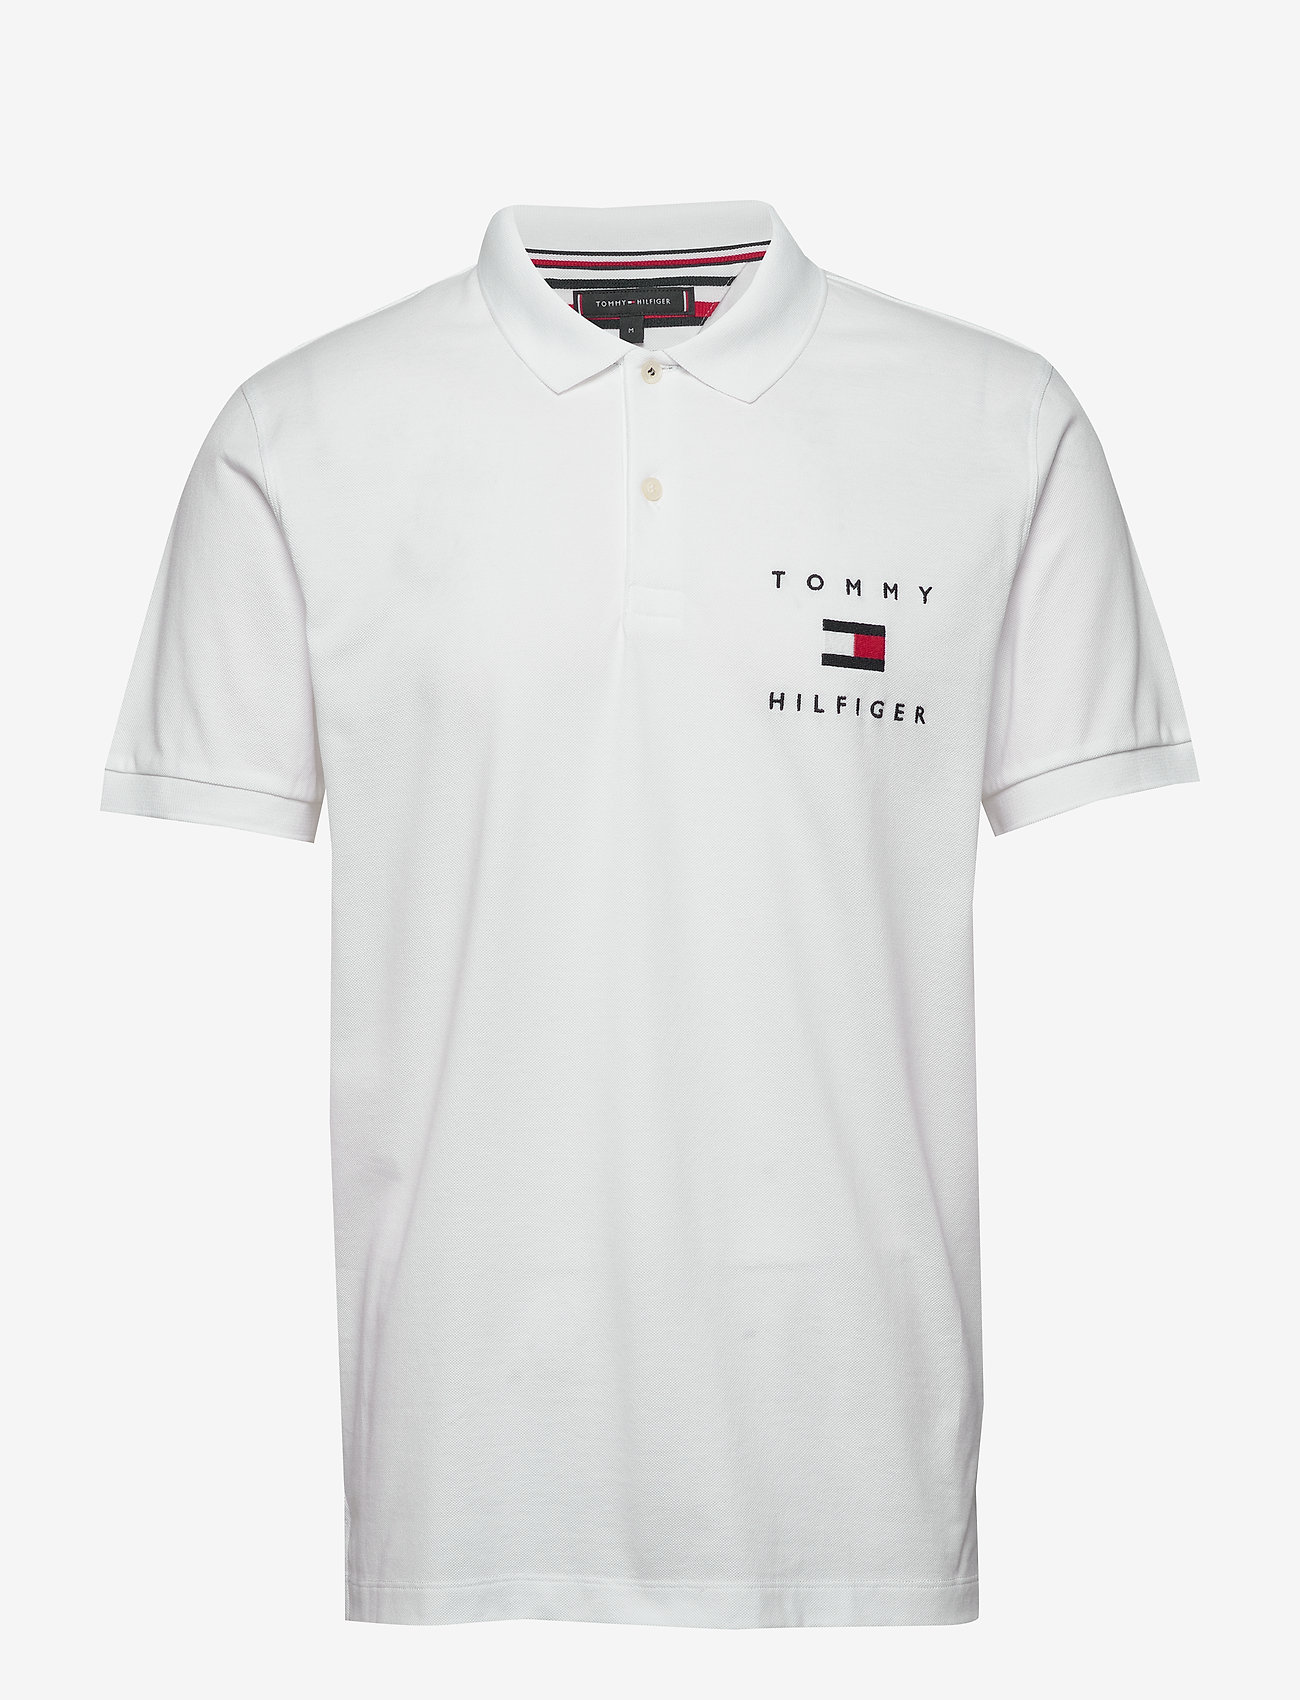 Tommy Hilfiger - TOMMY FLAG HILFIGER REG POLO - polos à manches courtes - white - 0